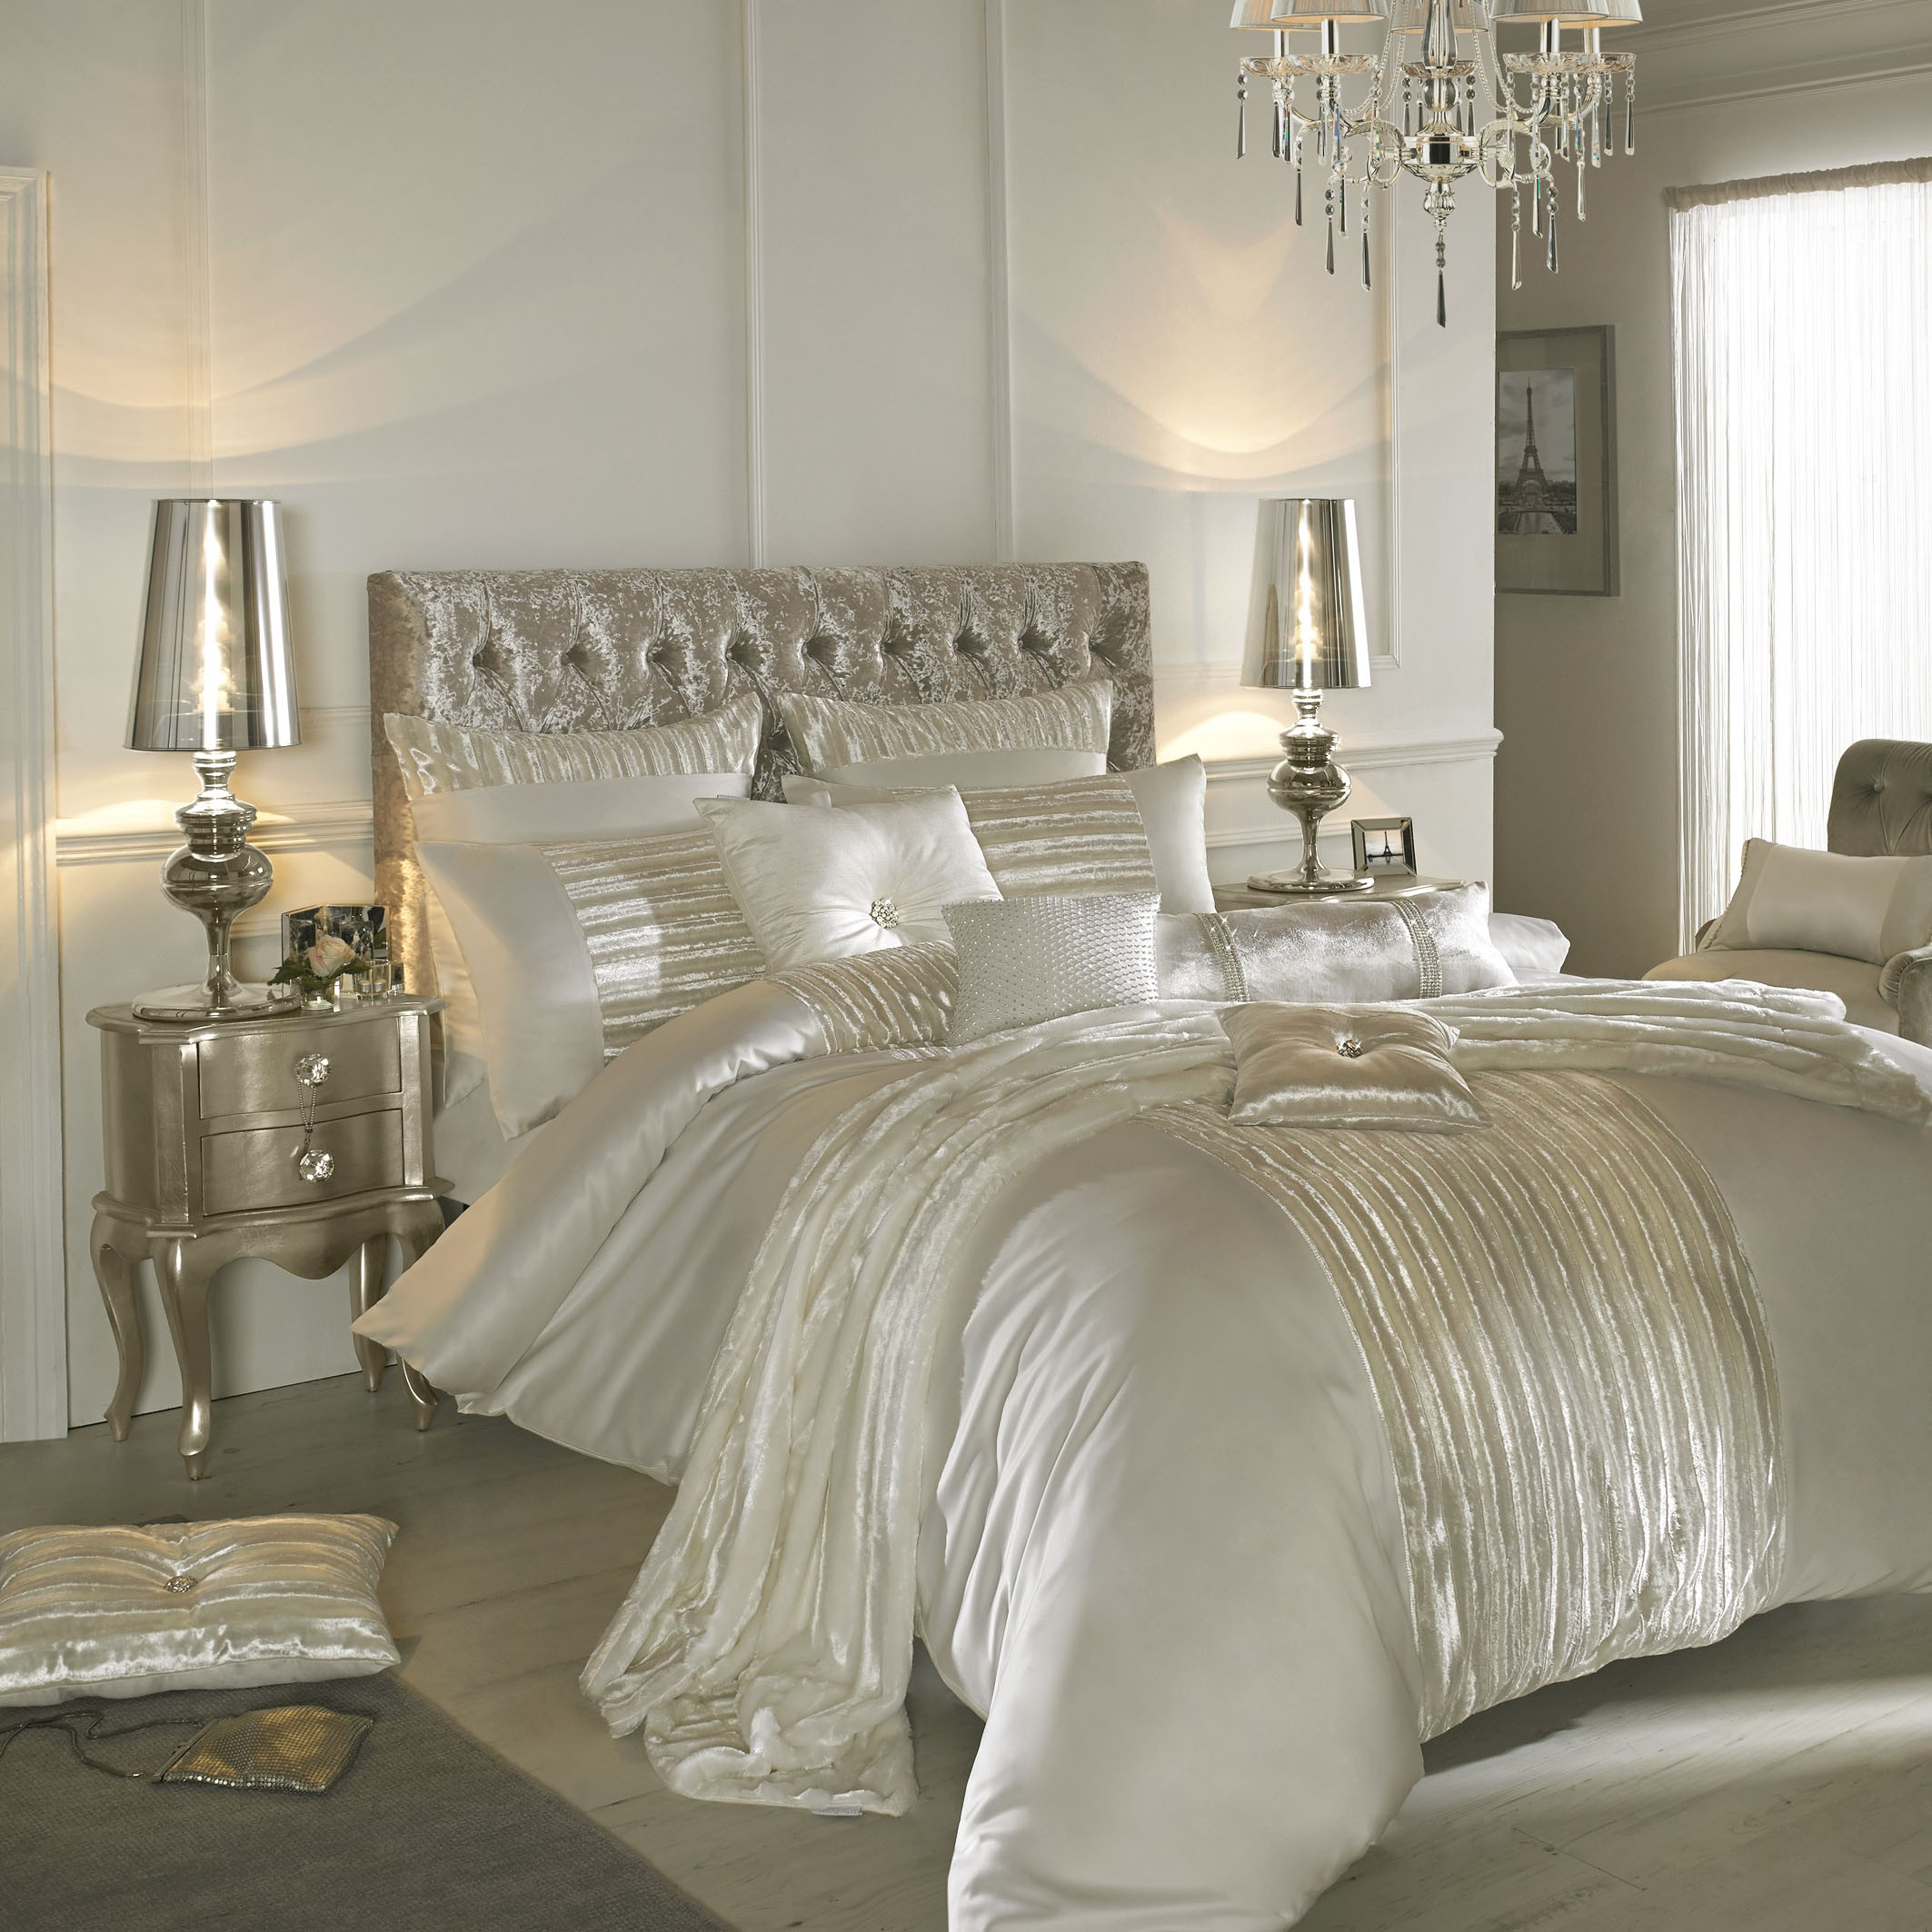 White and silver bedding ideas - Kylie Minogue Bedding Home Couture With Co Ordinating Throws Cushions Curtains